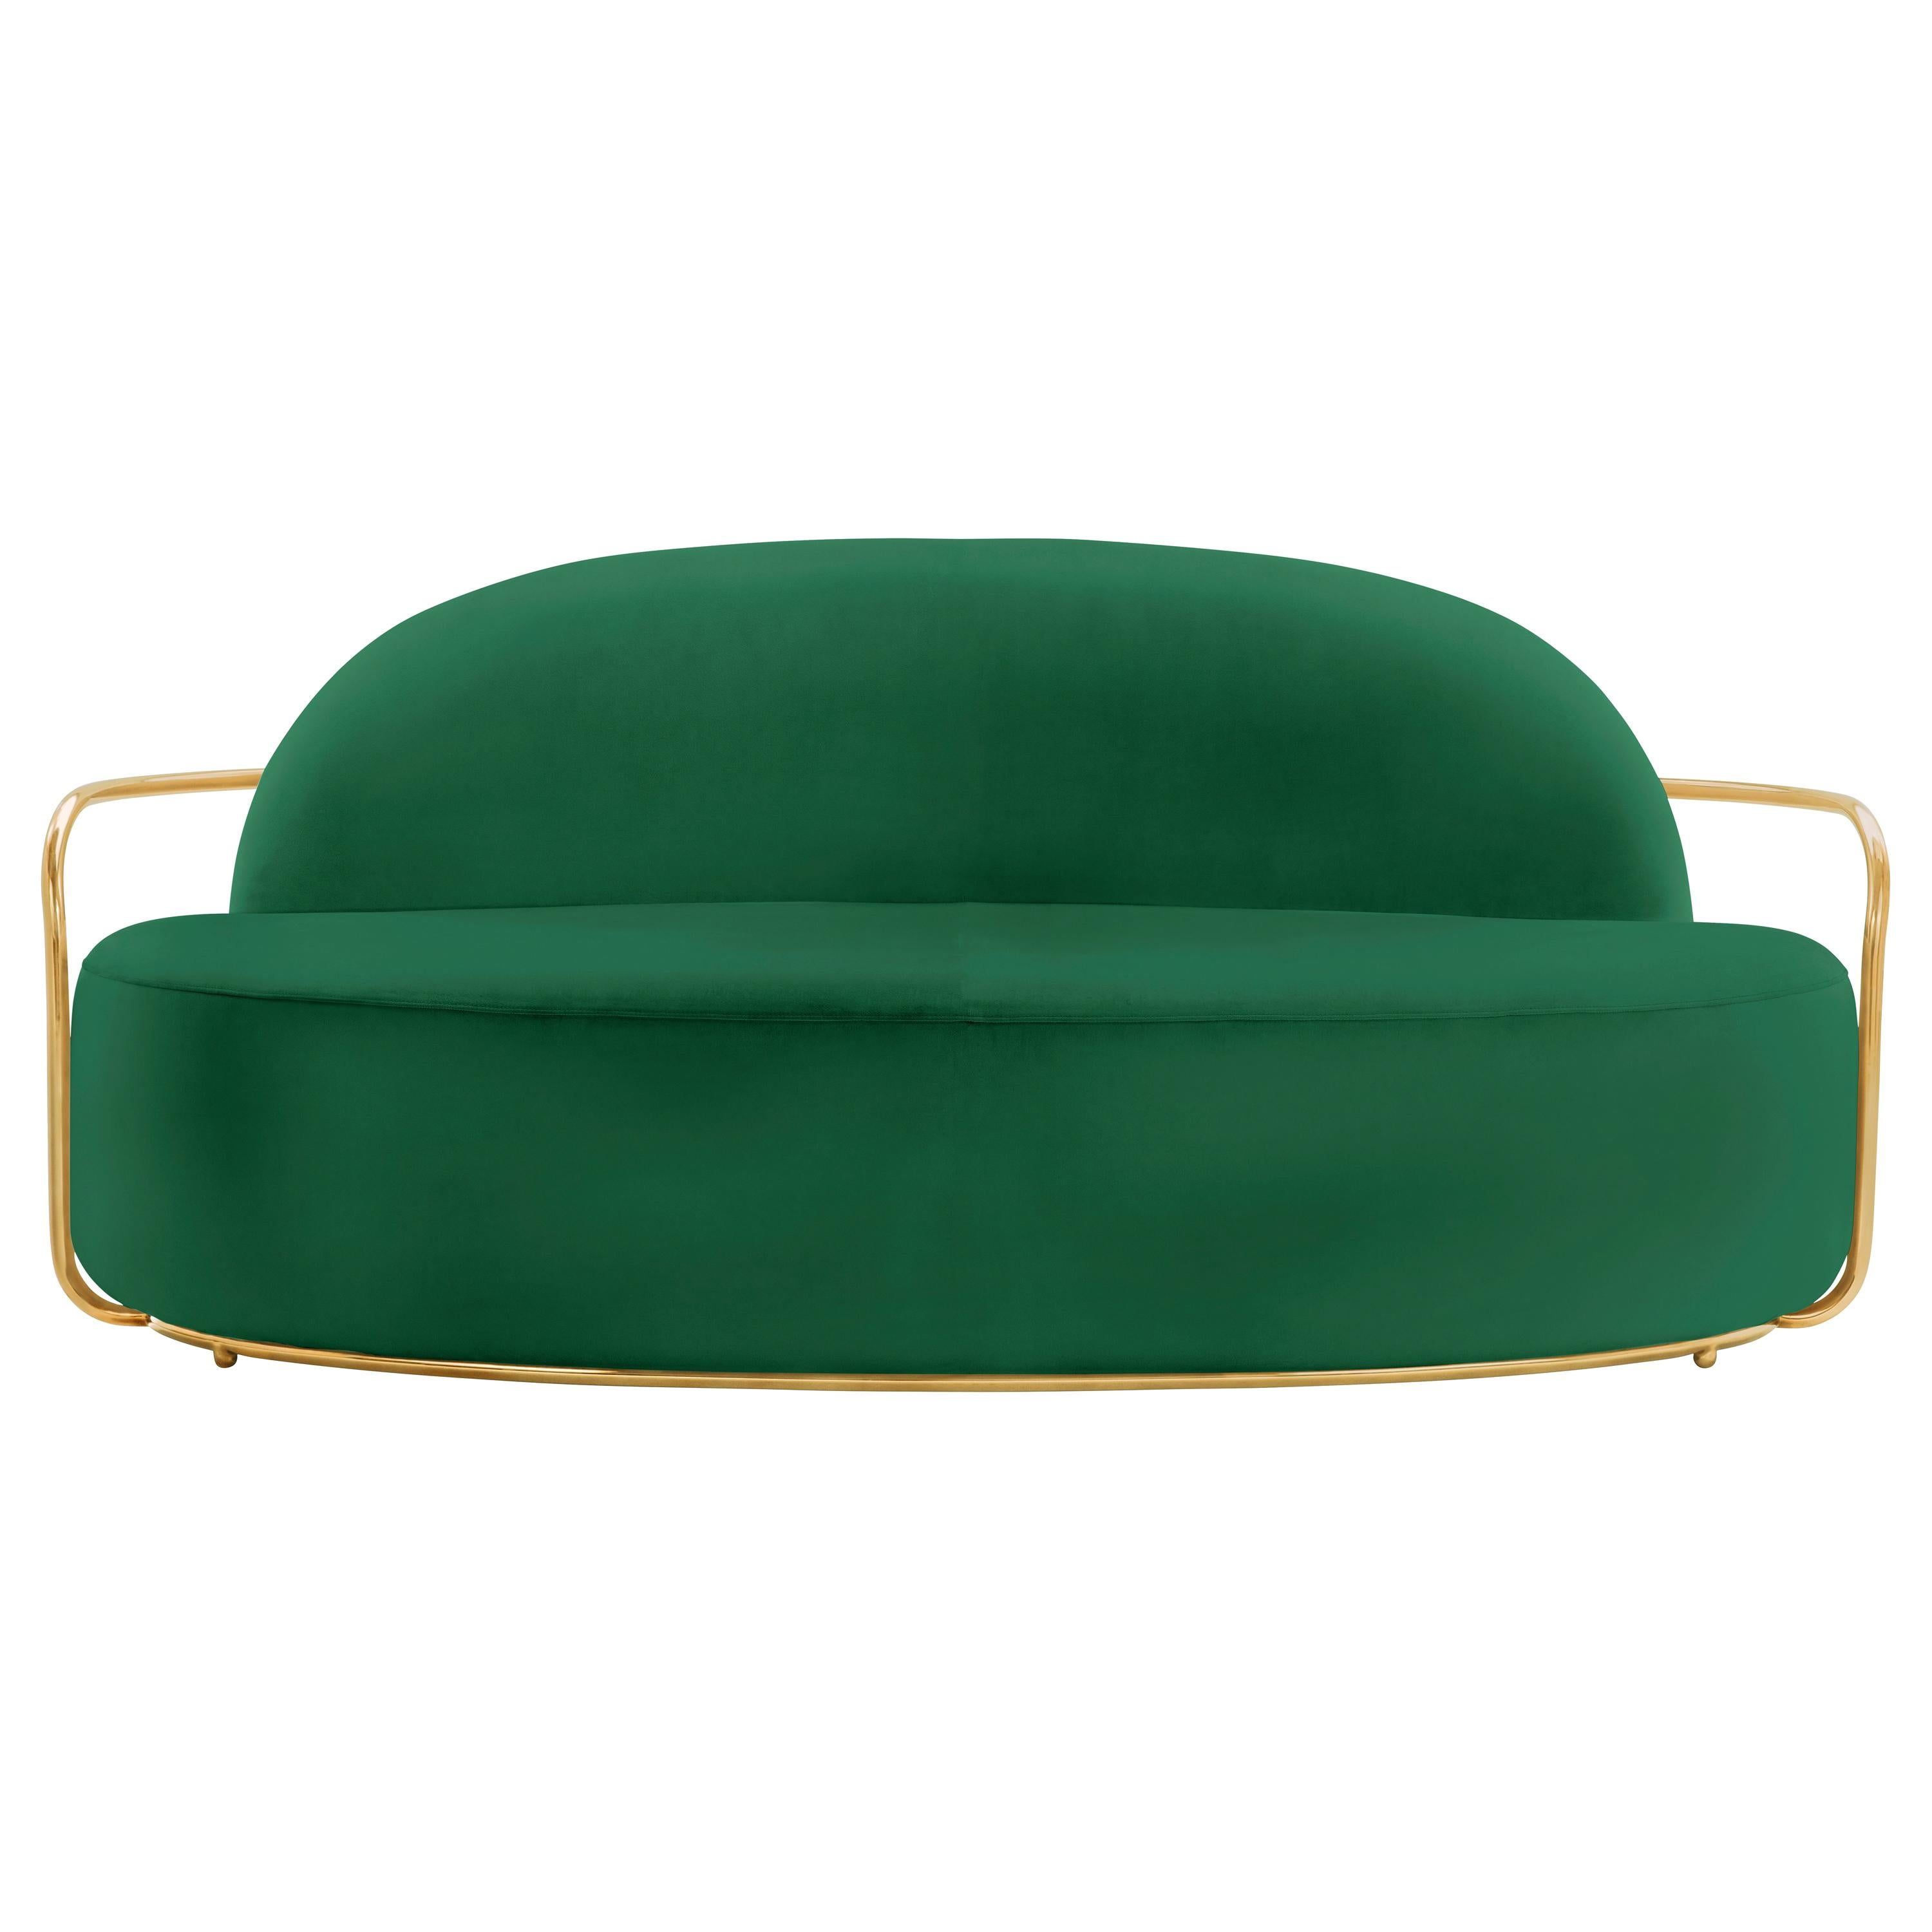 Orion 3 Seat Sofa with Plush Green Velvet and Gold Arms by Nika Zupanc